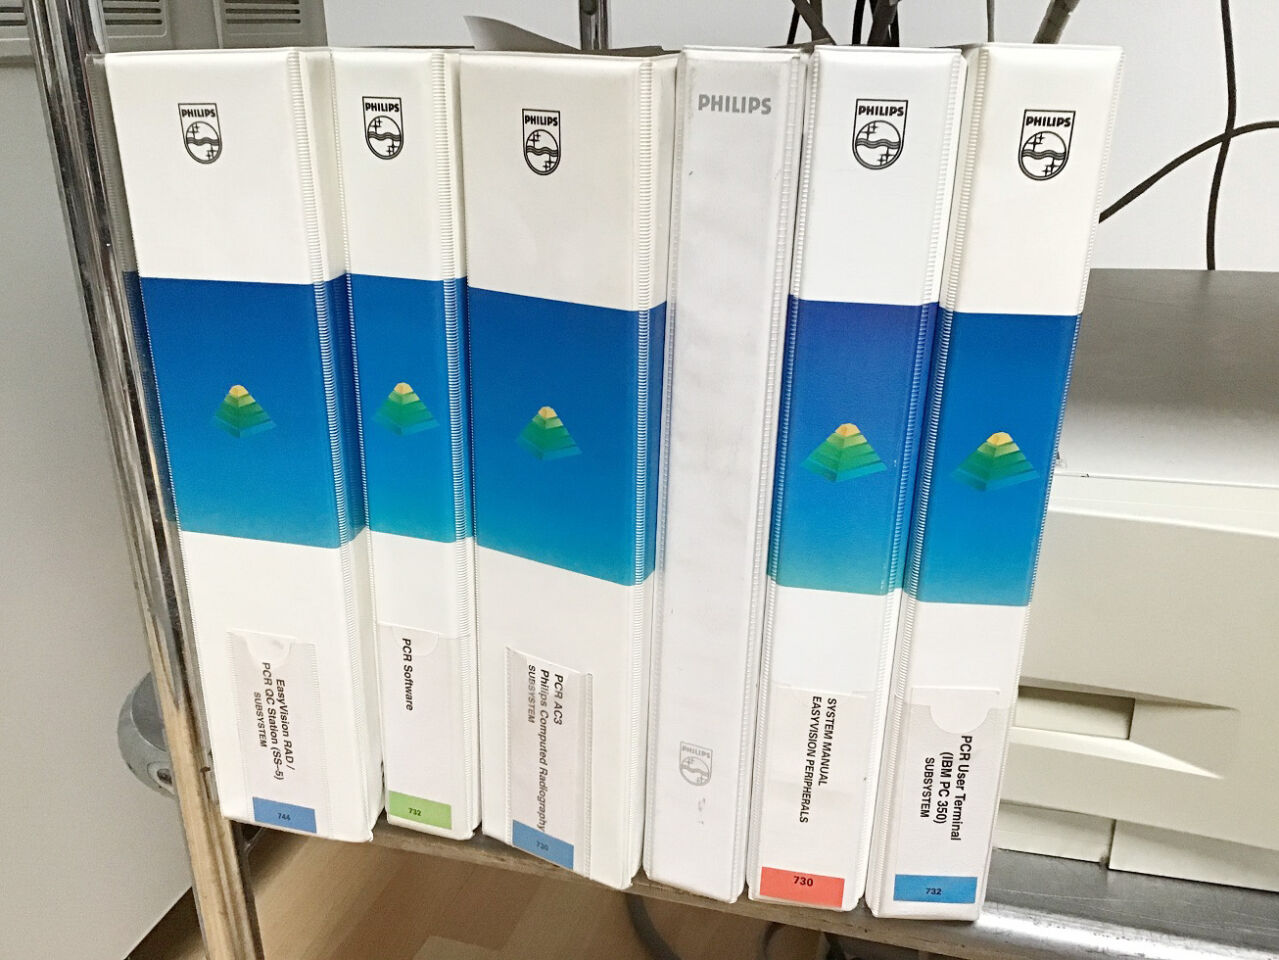 PHILIPS PCR AC3 / Easy Vision Digital Imaging System